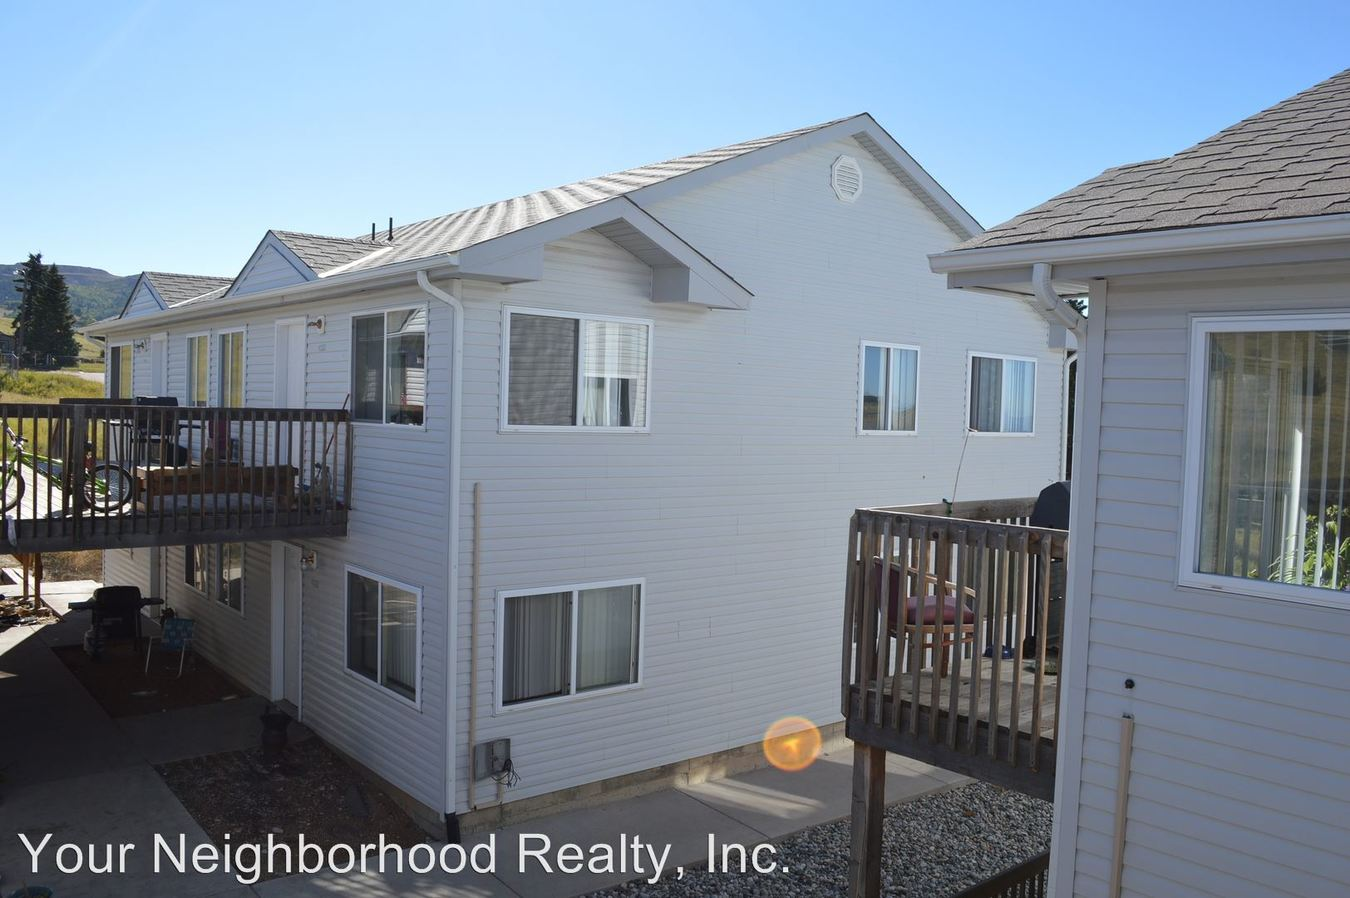 2 Bedrooms 2 Bathrooms Apartment for rent at 107, 109, 111, 113 Hettig Ave in Cripple Creek, CO